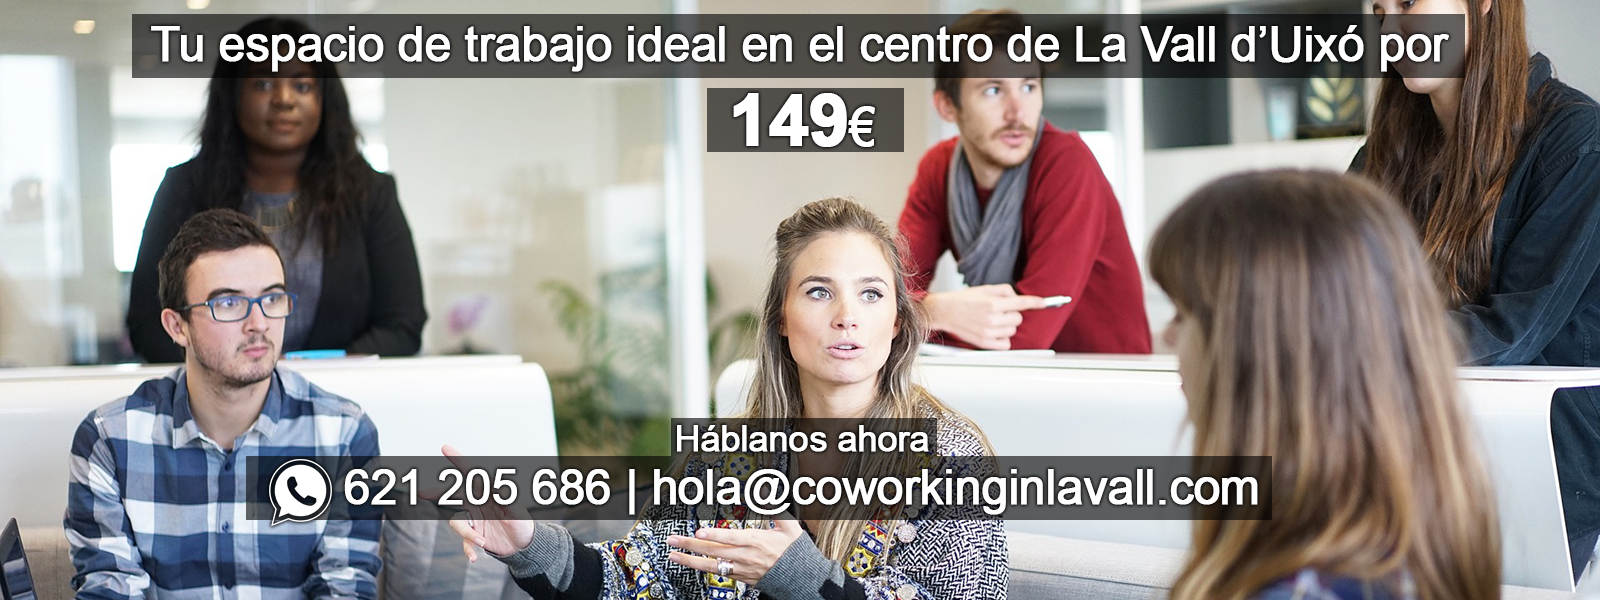 COWORKING IN LAVALL